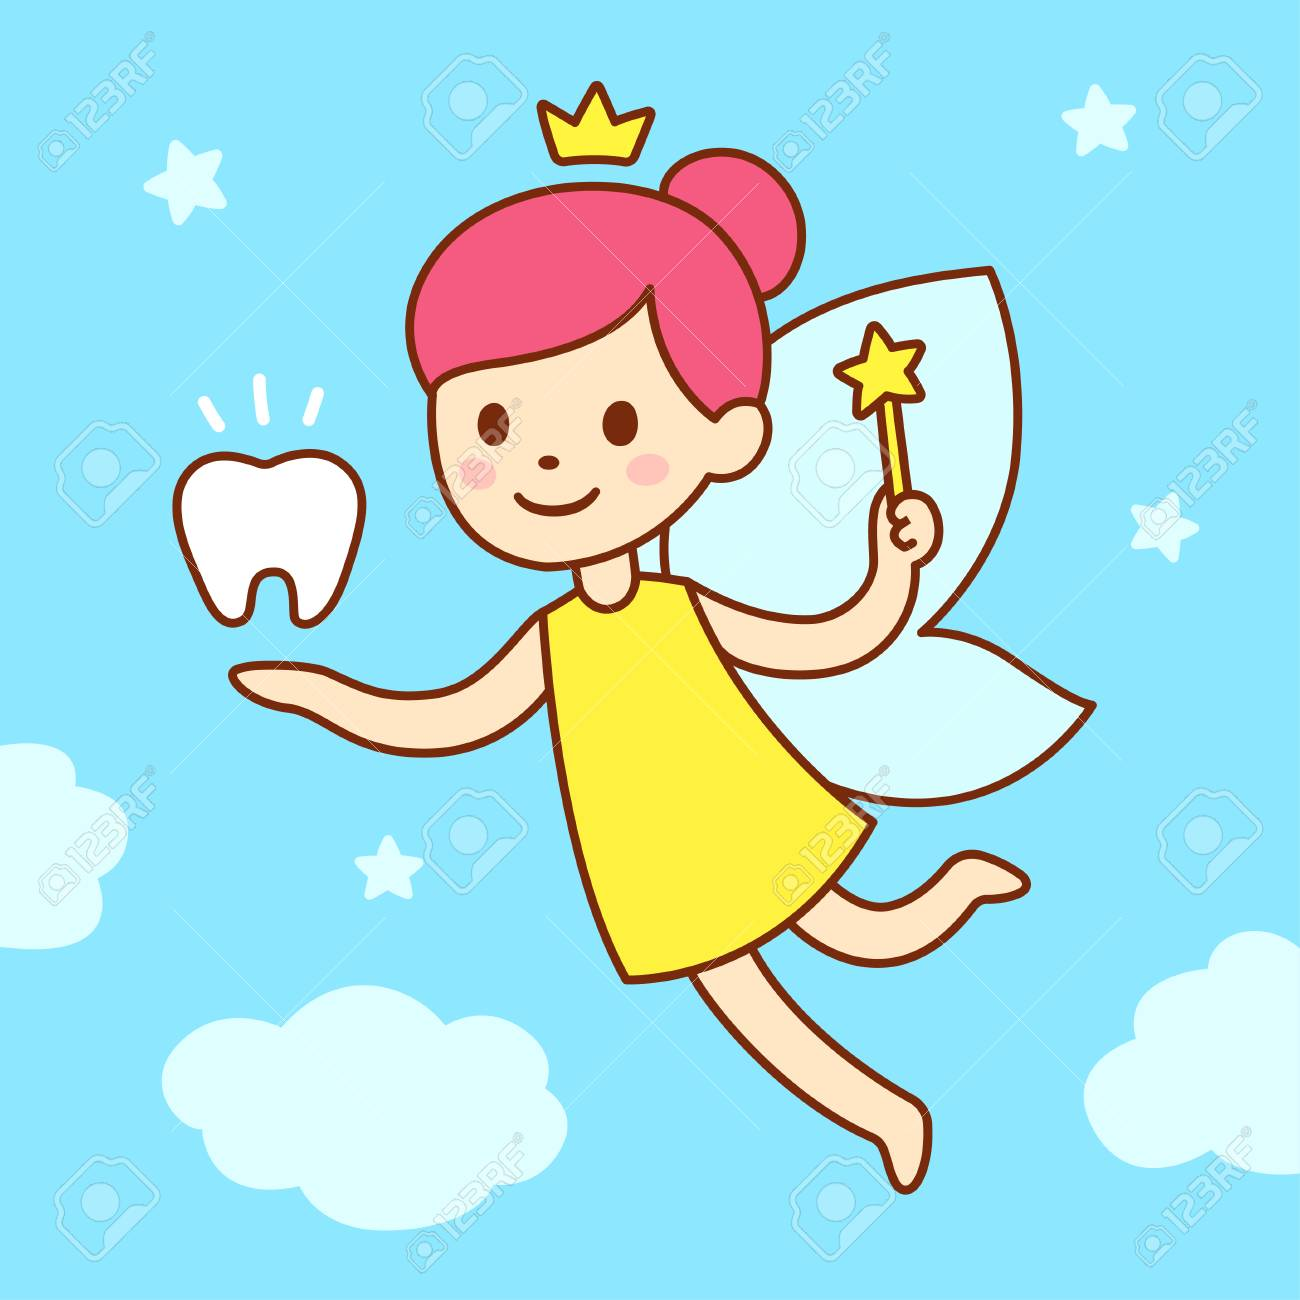 Cute little tooth fairy with wings, magic wand and a tooth. Cartoon vector illustration. - 110288689